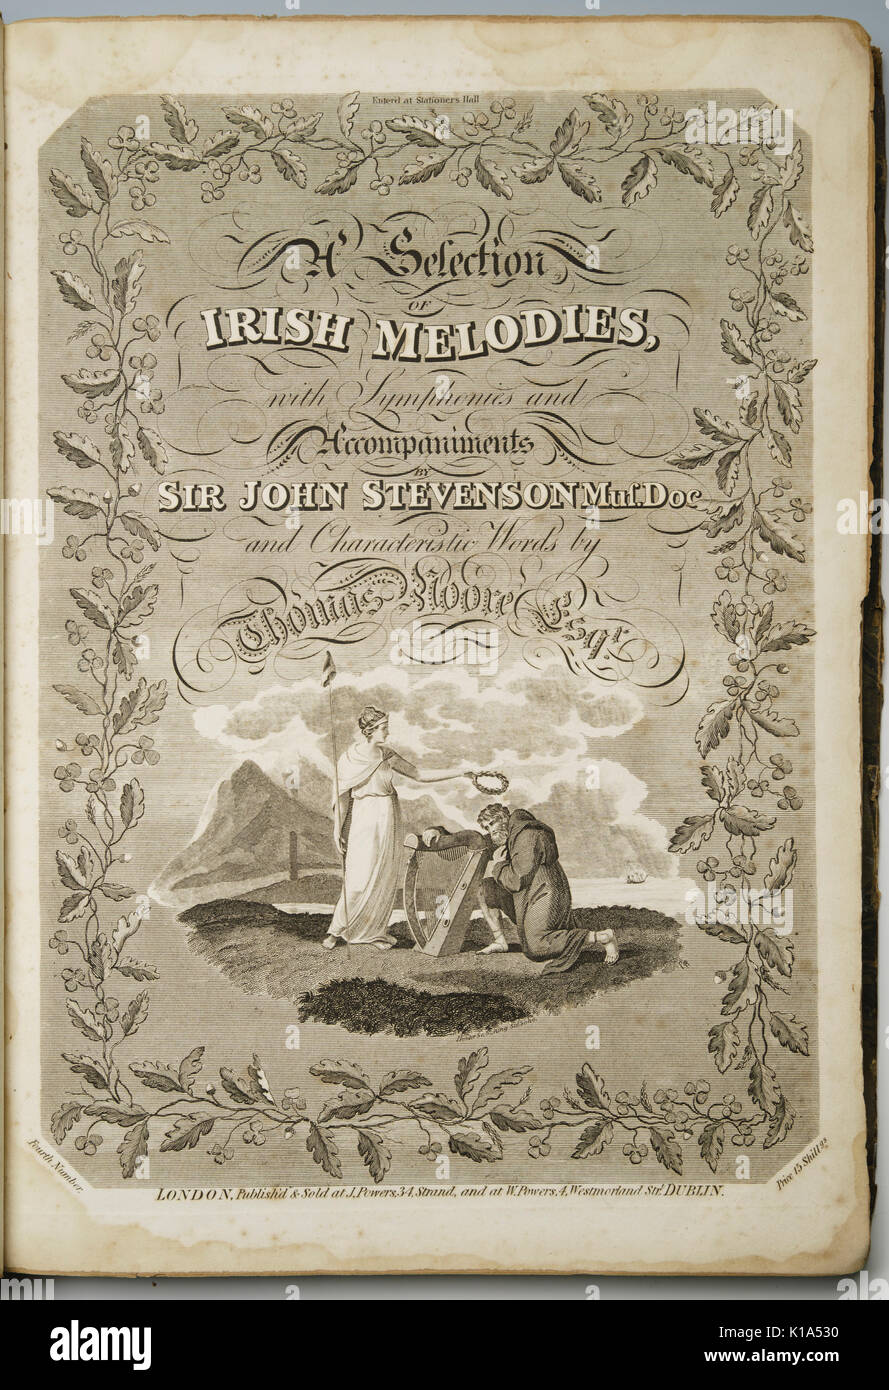 Sir John Stevenson's Irish Melodies, with words by Thomas Moore. Early 19th century music book frontispiece. - Stock Image